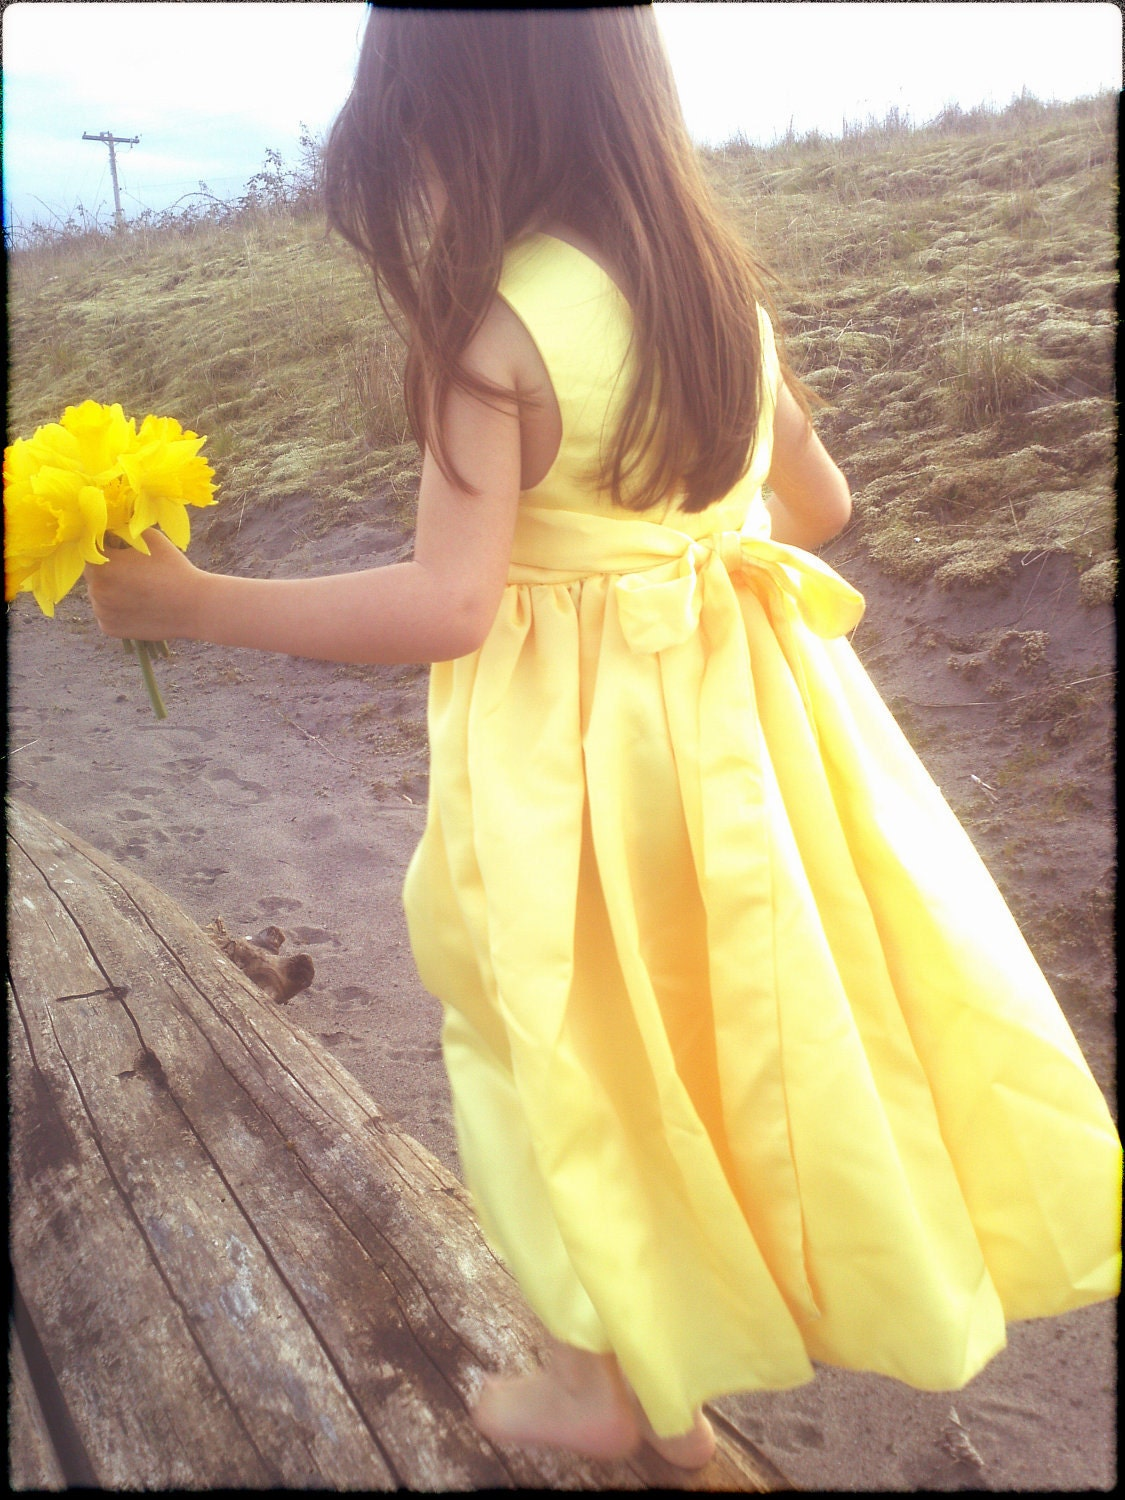 Flower Girl Dress: My Little Sunshine Dress. custom made to order. satin flower girl dress. shown in sunshine yellow. match your wedding. - MelissaRenePrice